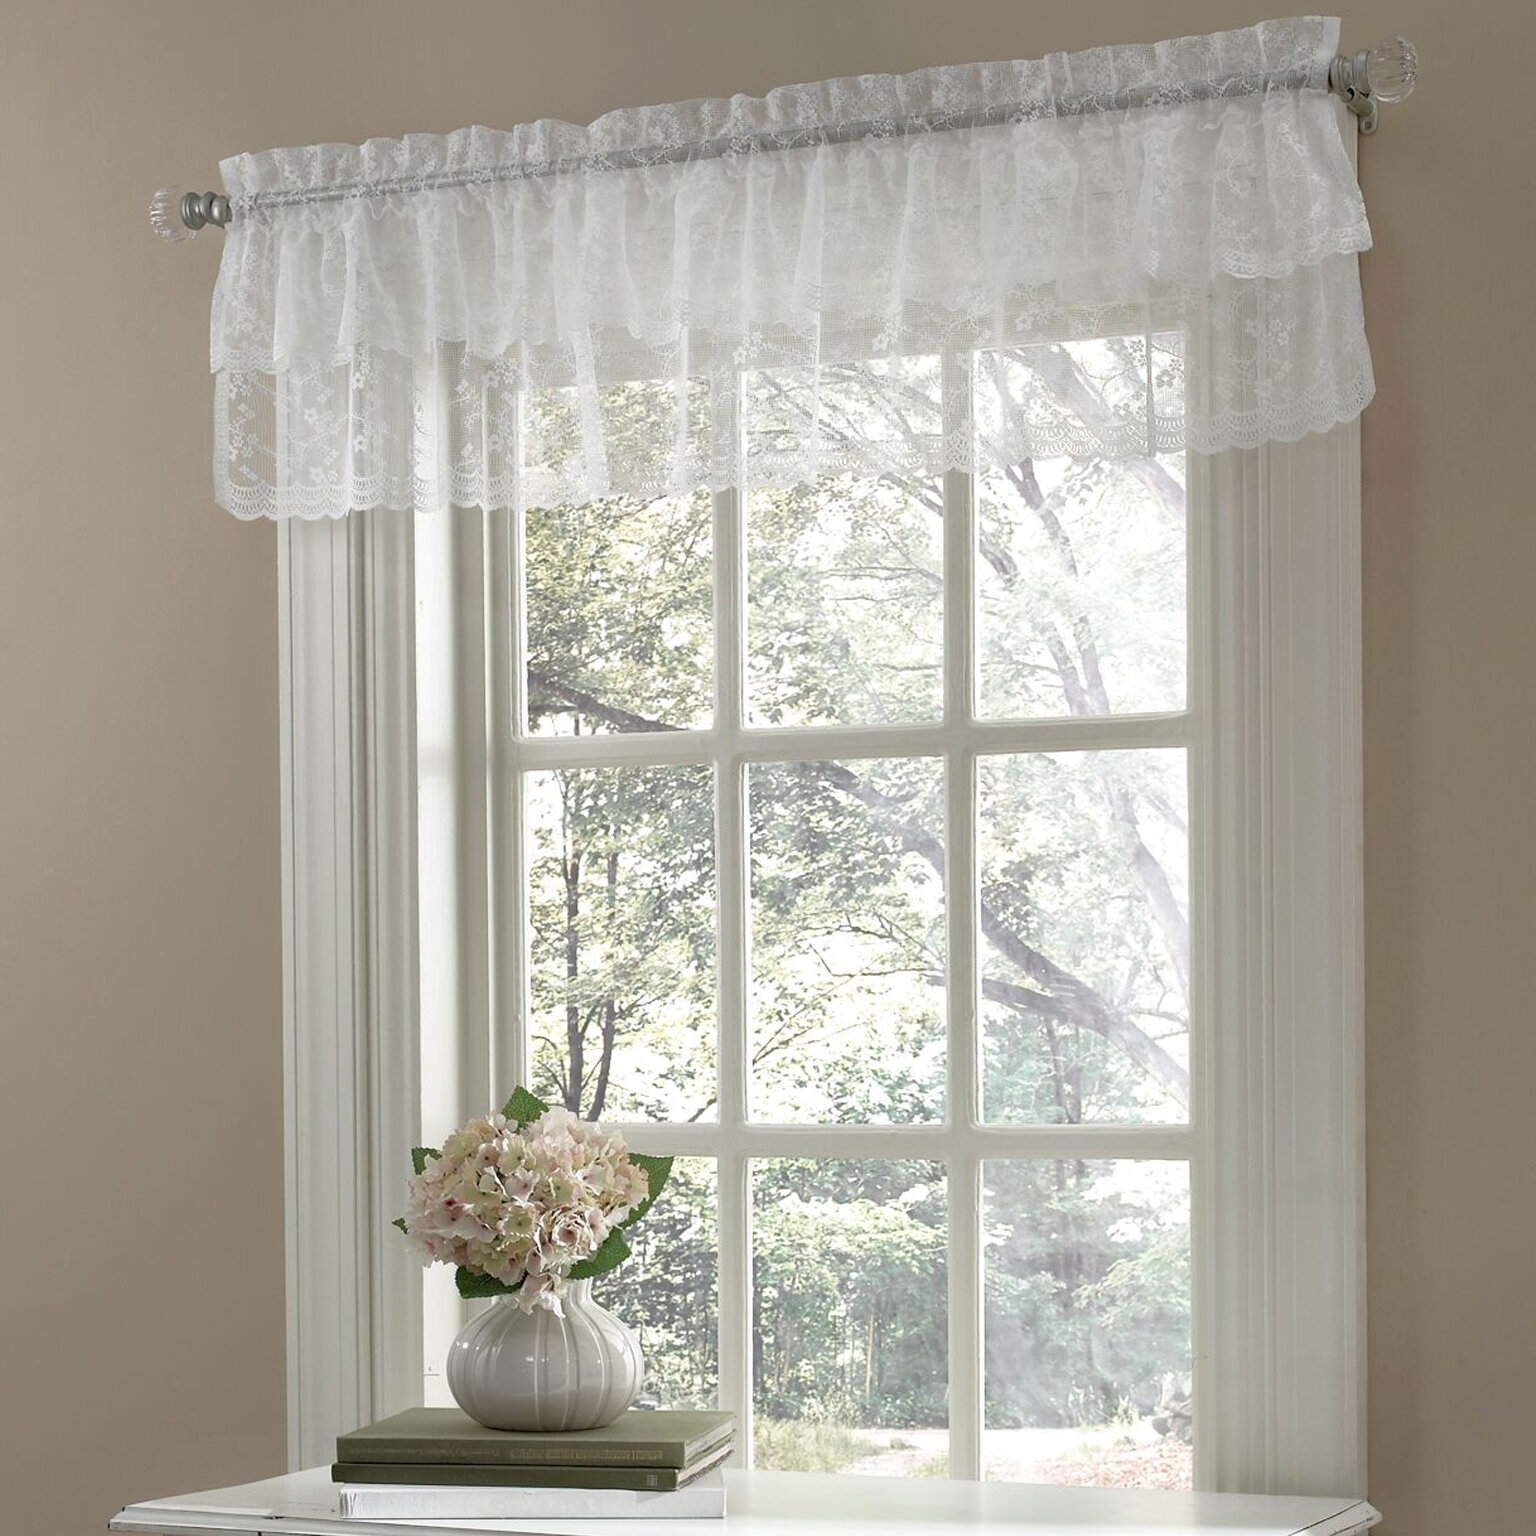 60-Inch by 12-Inch American Curtain and Home Deanna Window Treatment Valance Natural